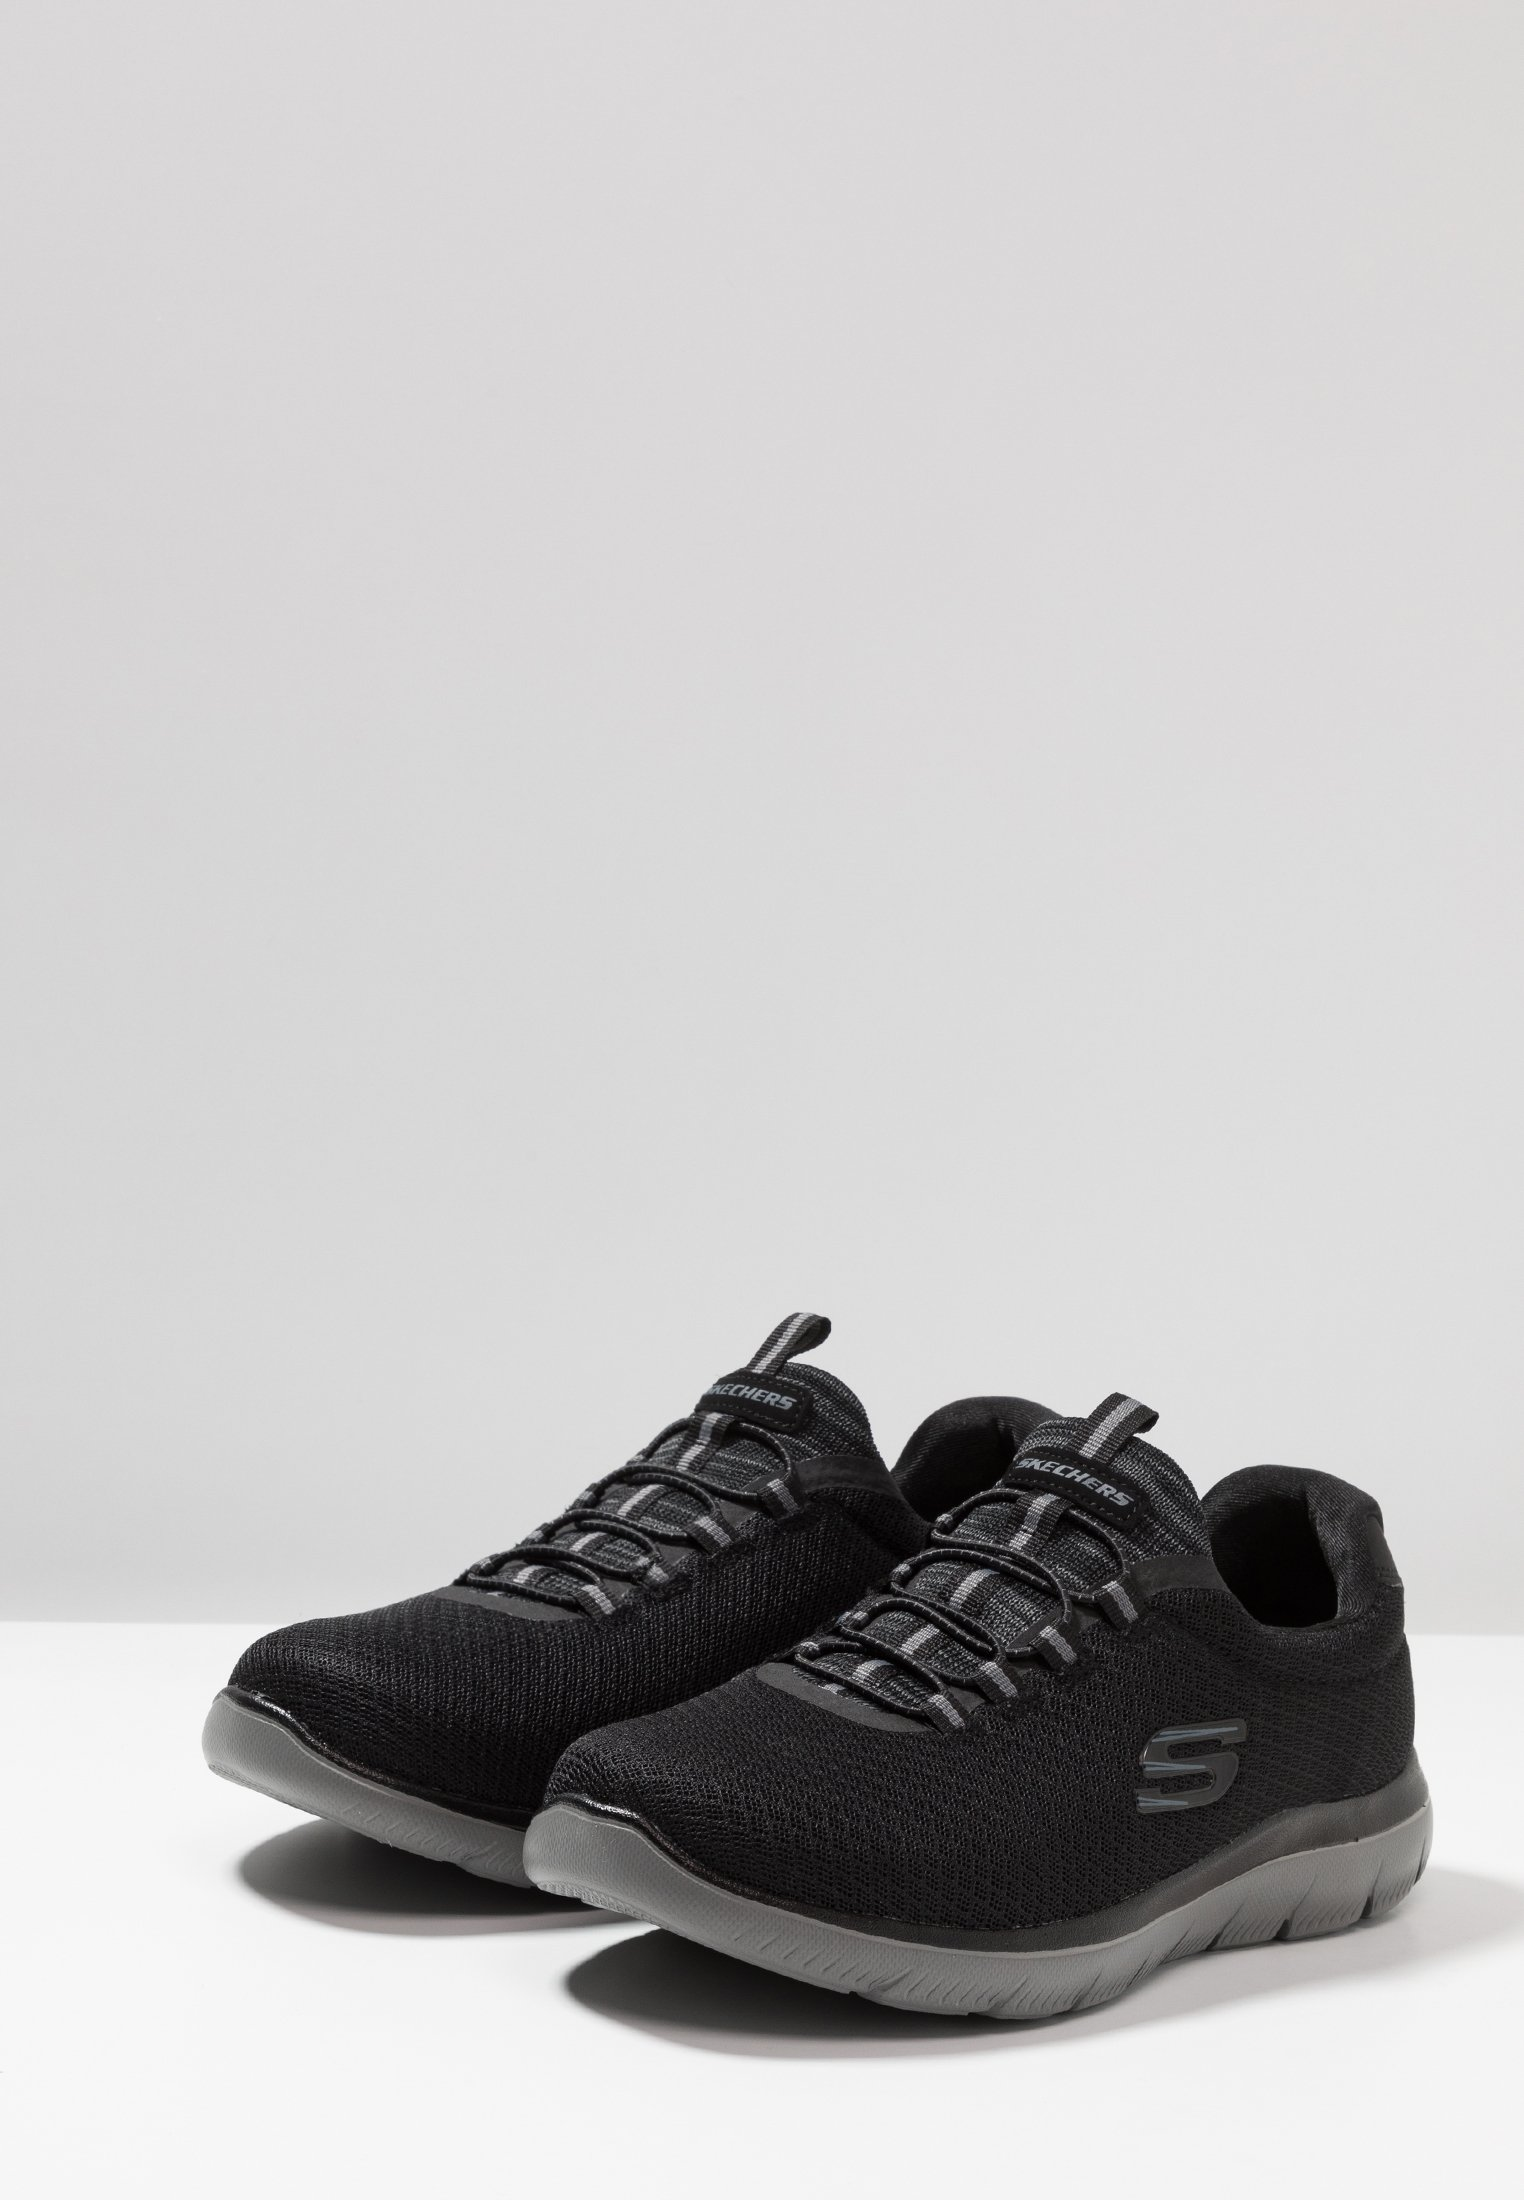 Skechers Sport SUMMITS Joggesko blackcharcoal Zalando.no